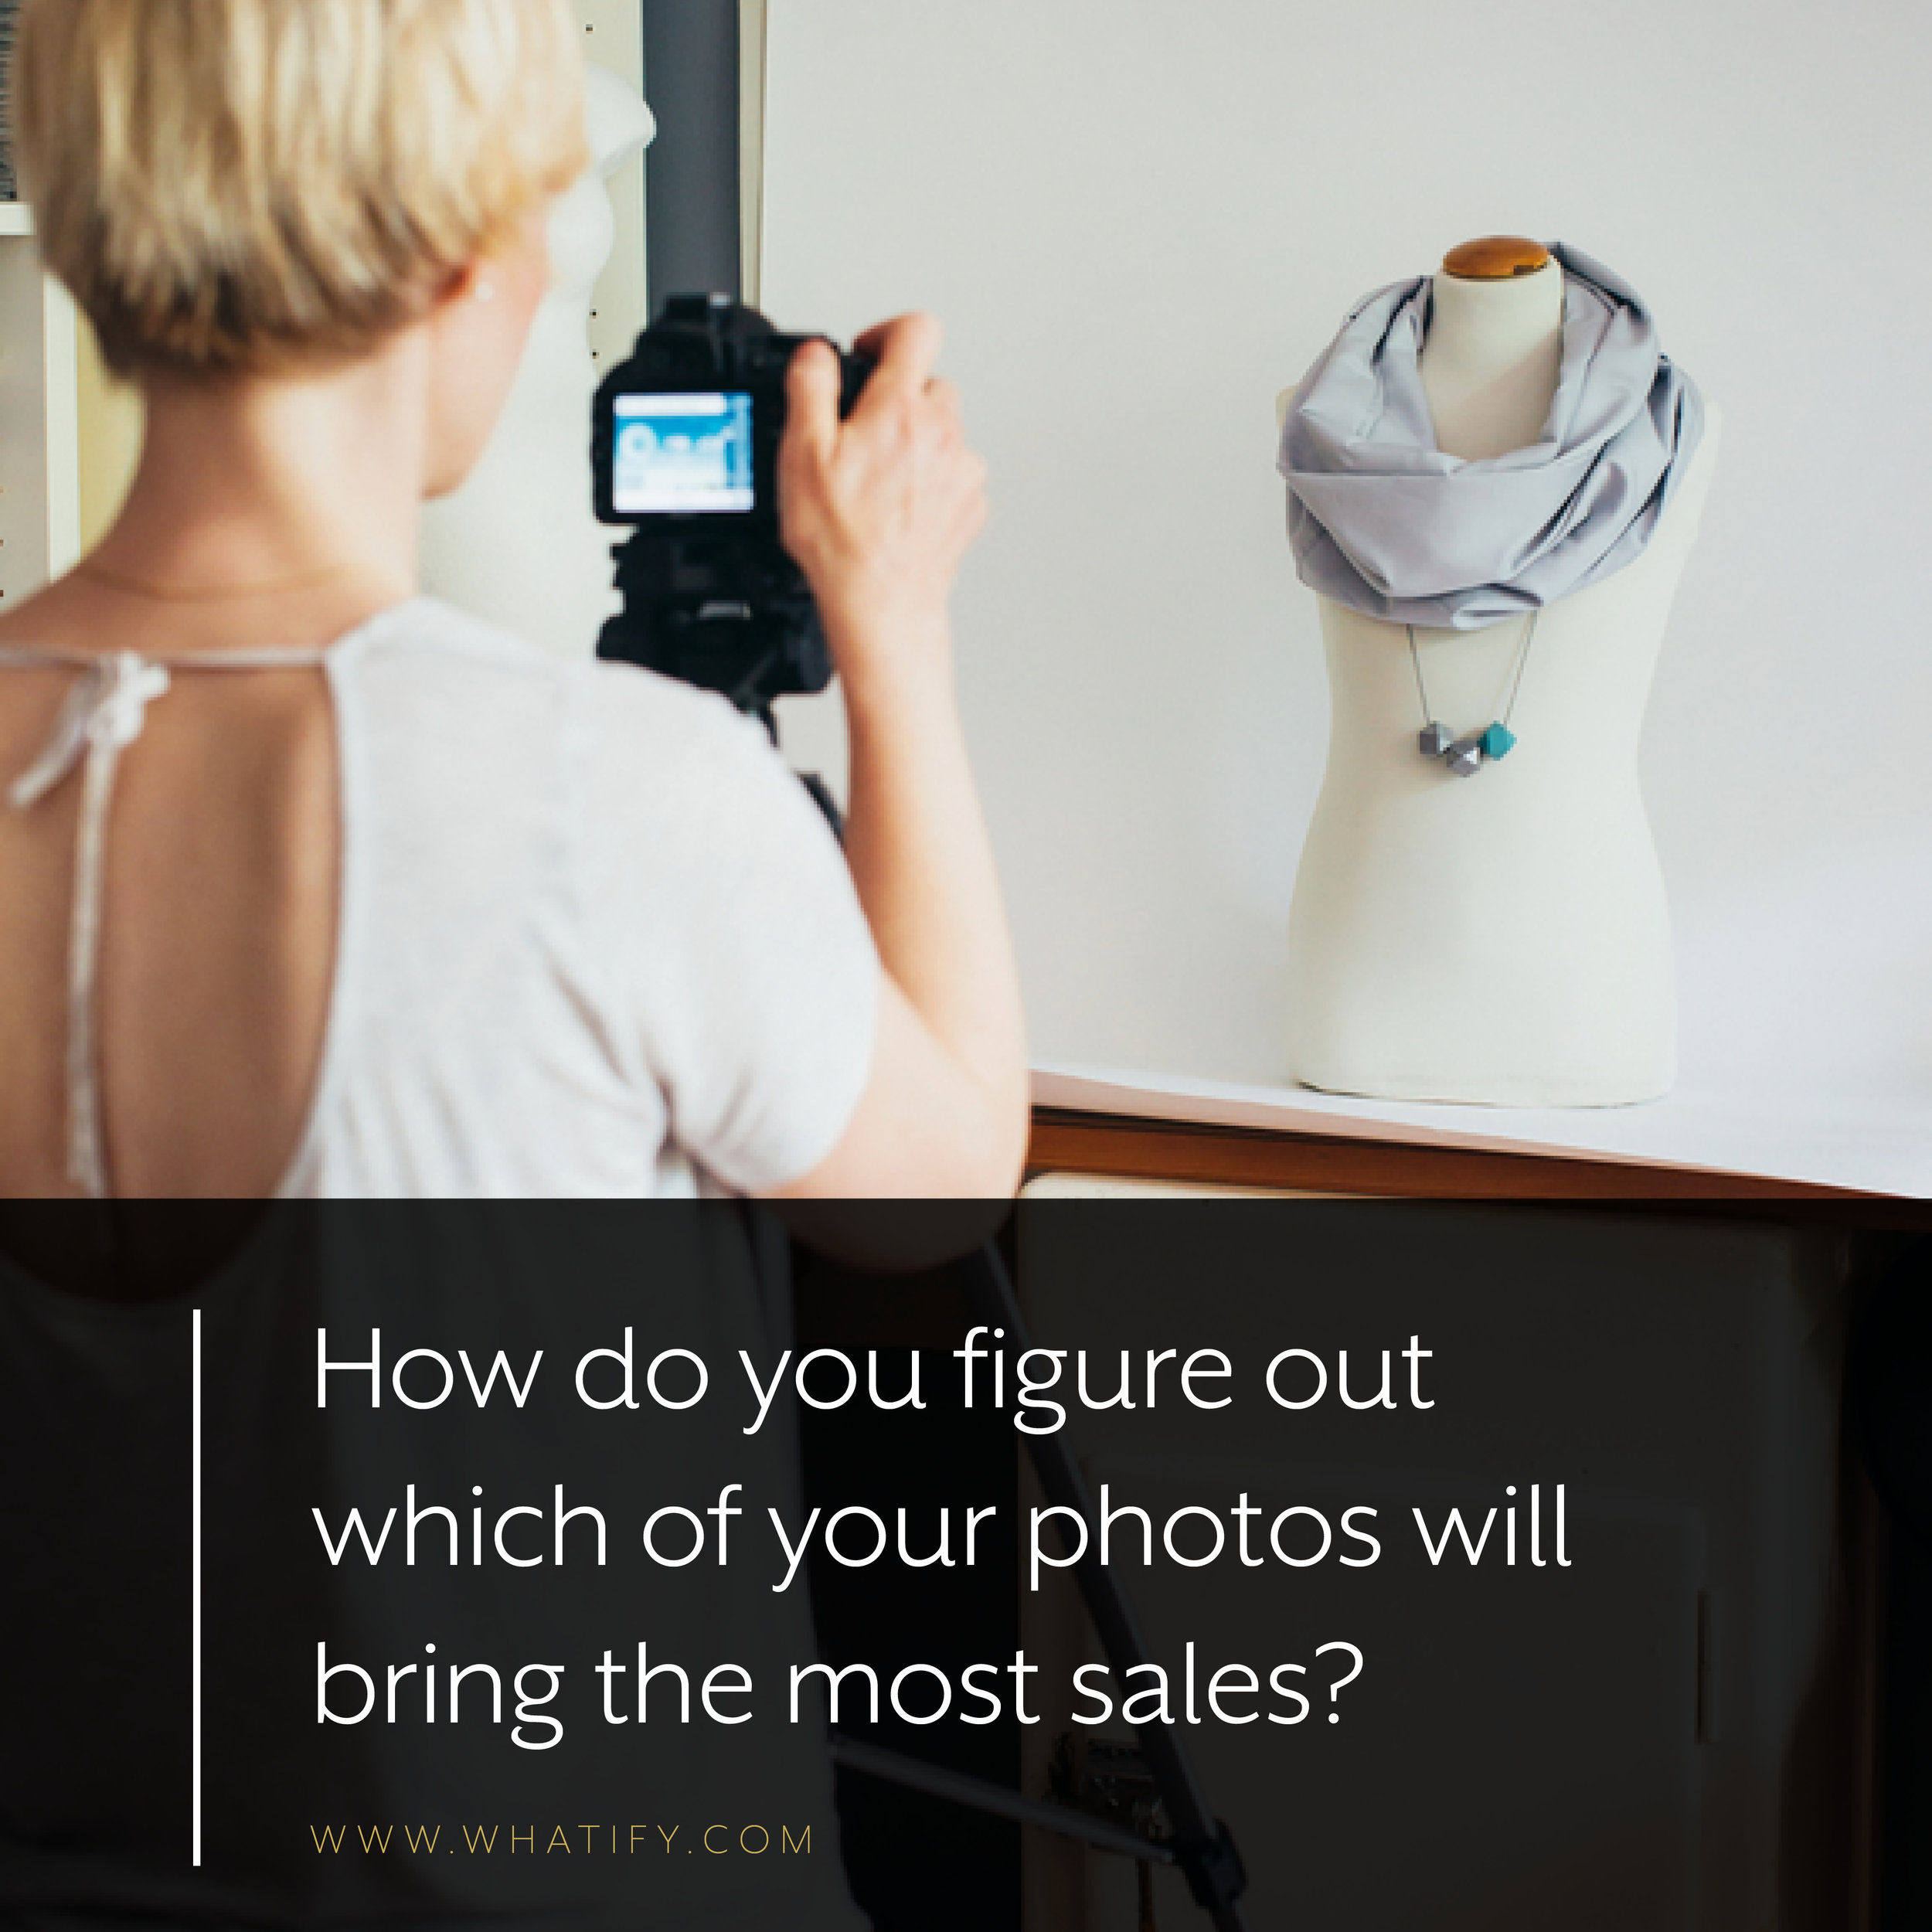 better product photography brings more sales